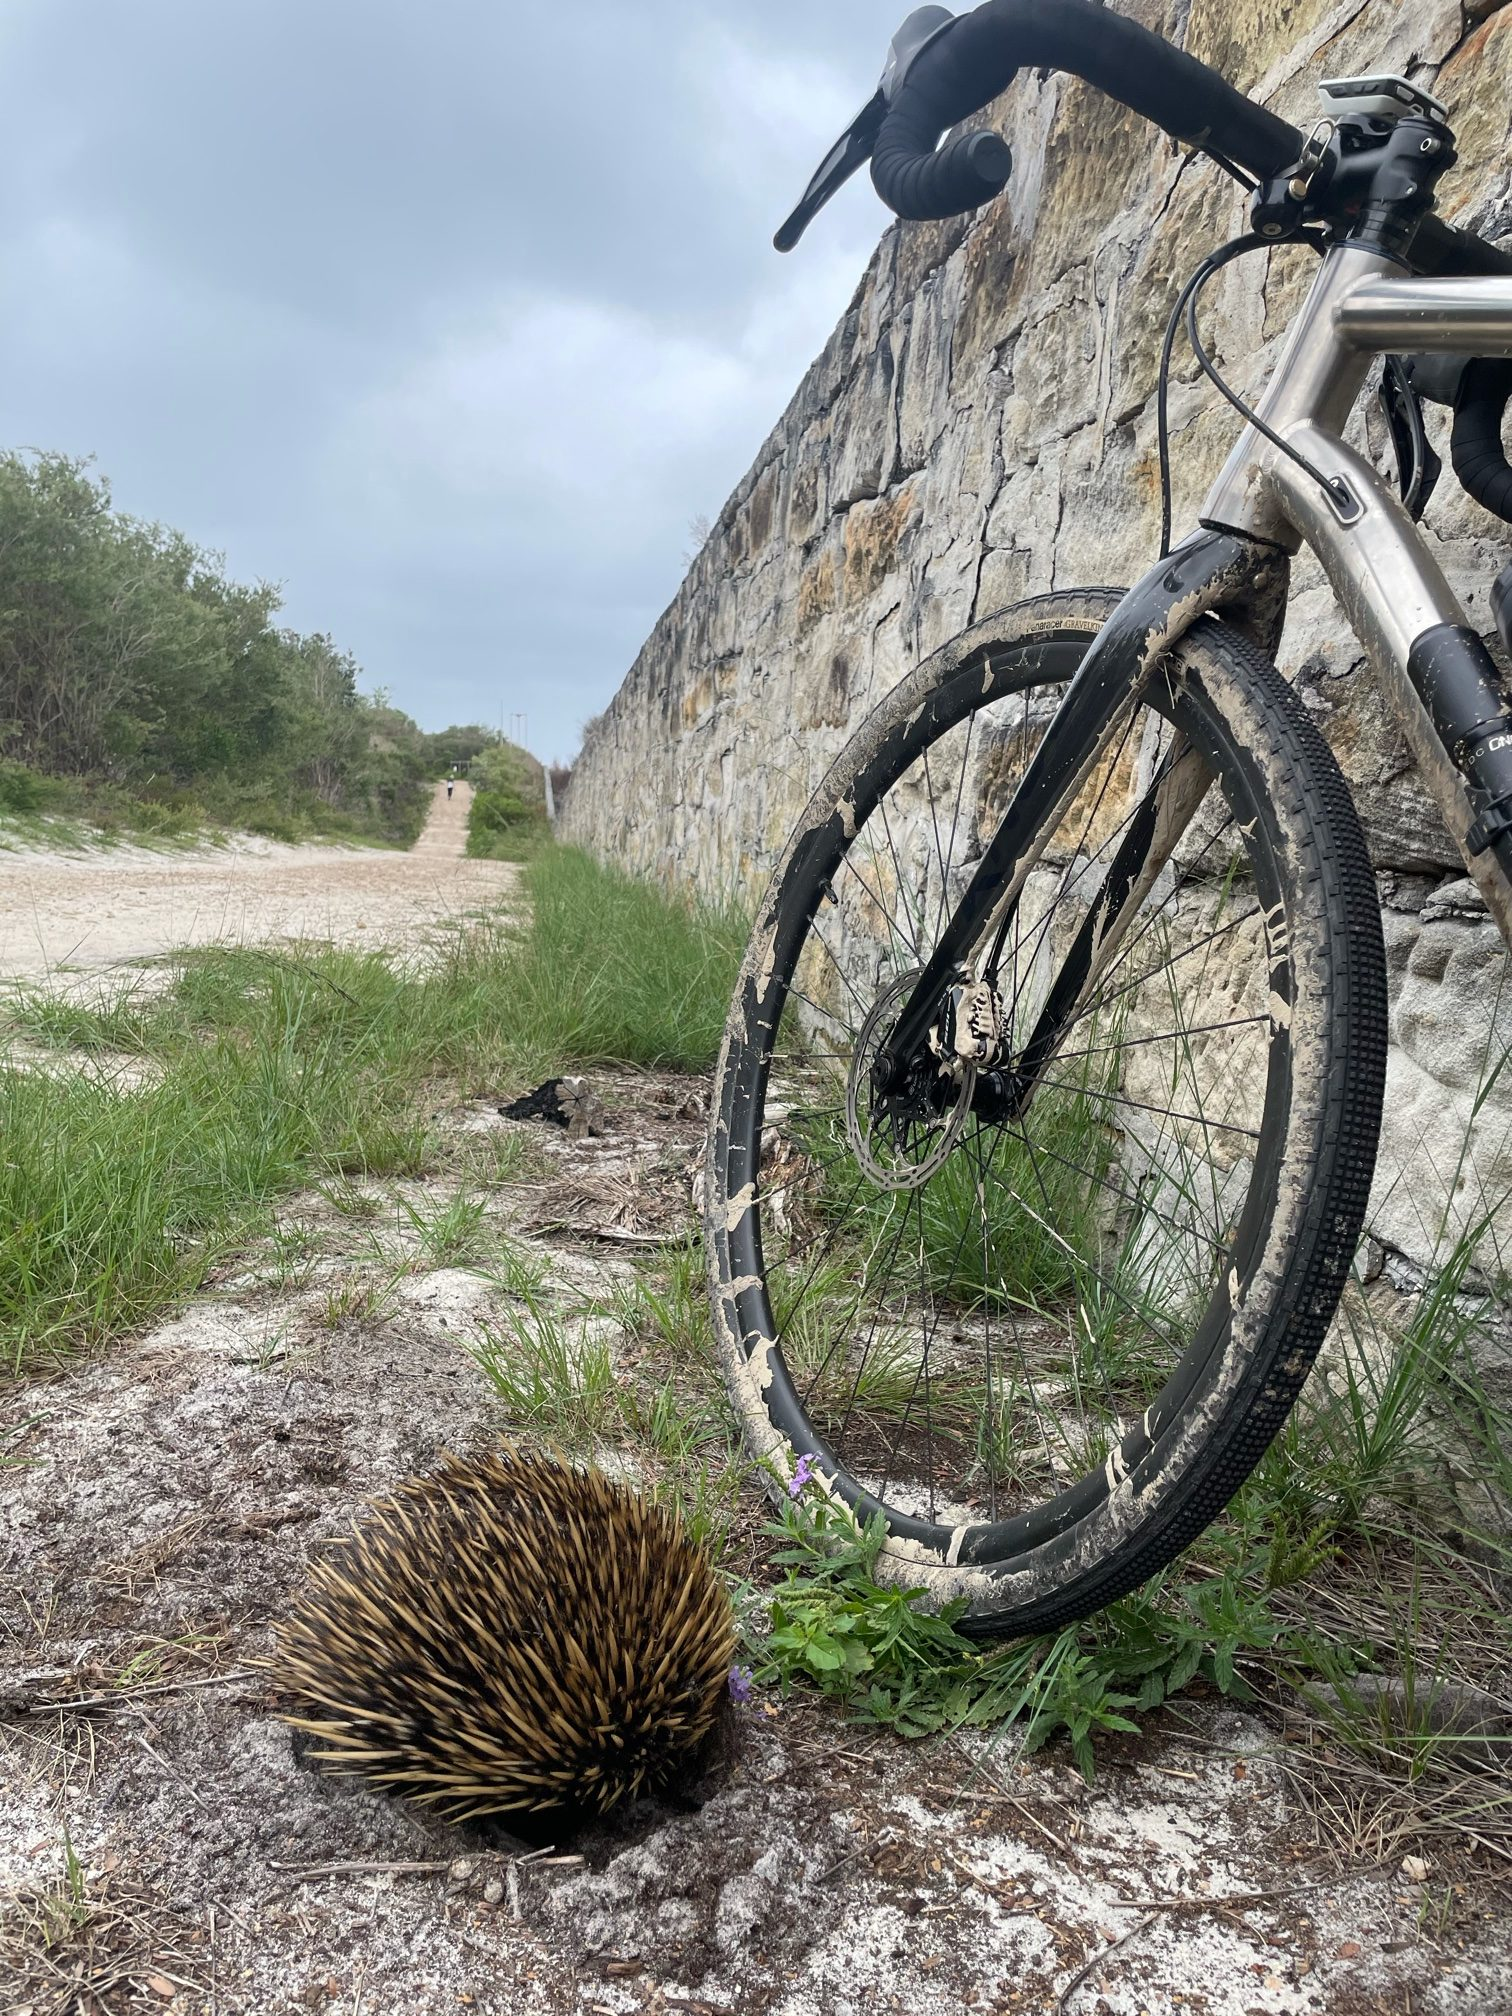 Bikerumor Pic Of The Day: Manly, Australië